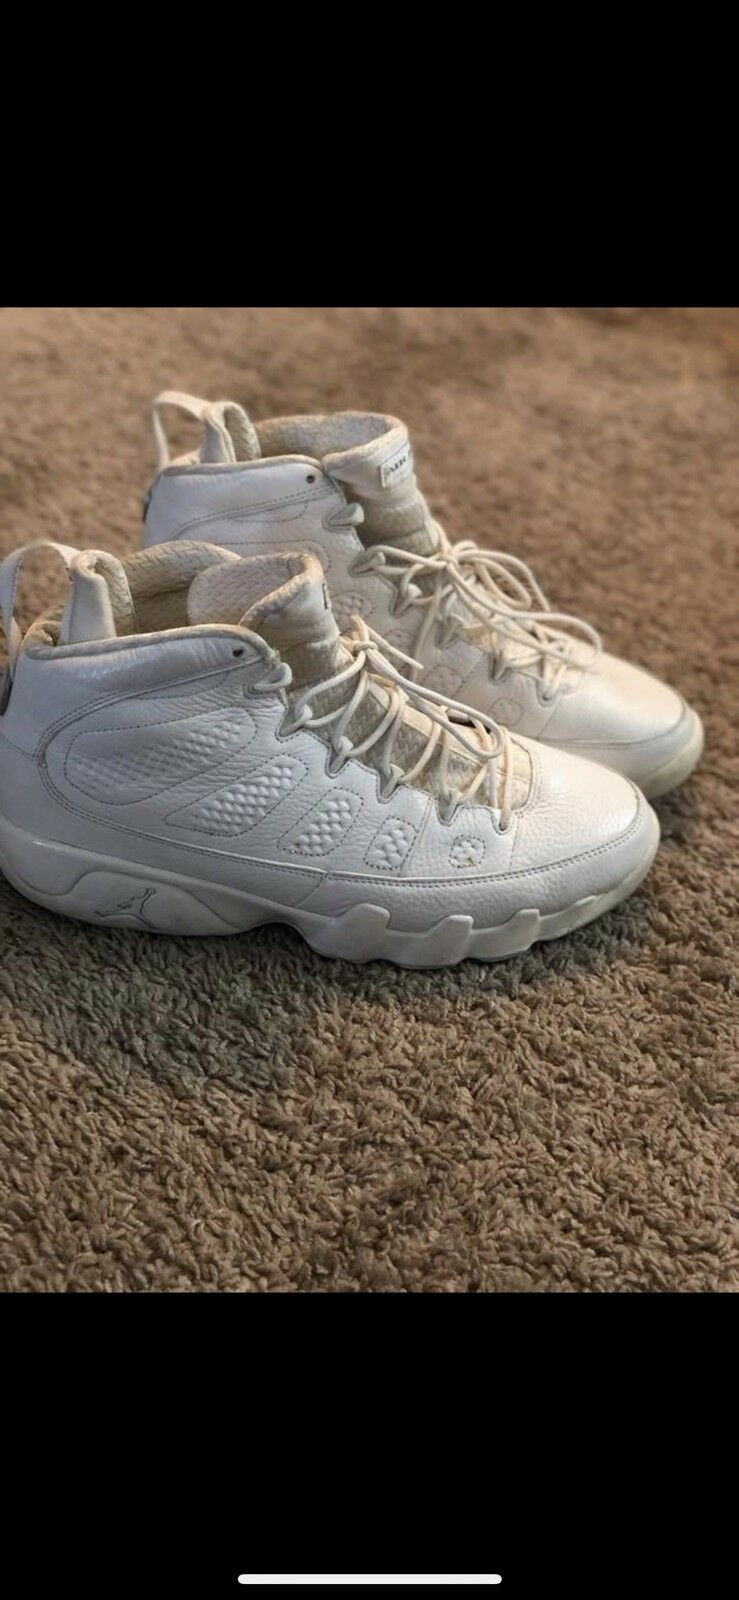 3804726d4712eb Man s Woman s Jordan 9 Silver Silver Silver Anniversary Modern technology  Won highly appreciated and widely